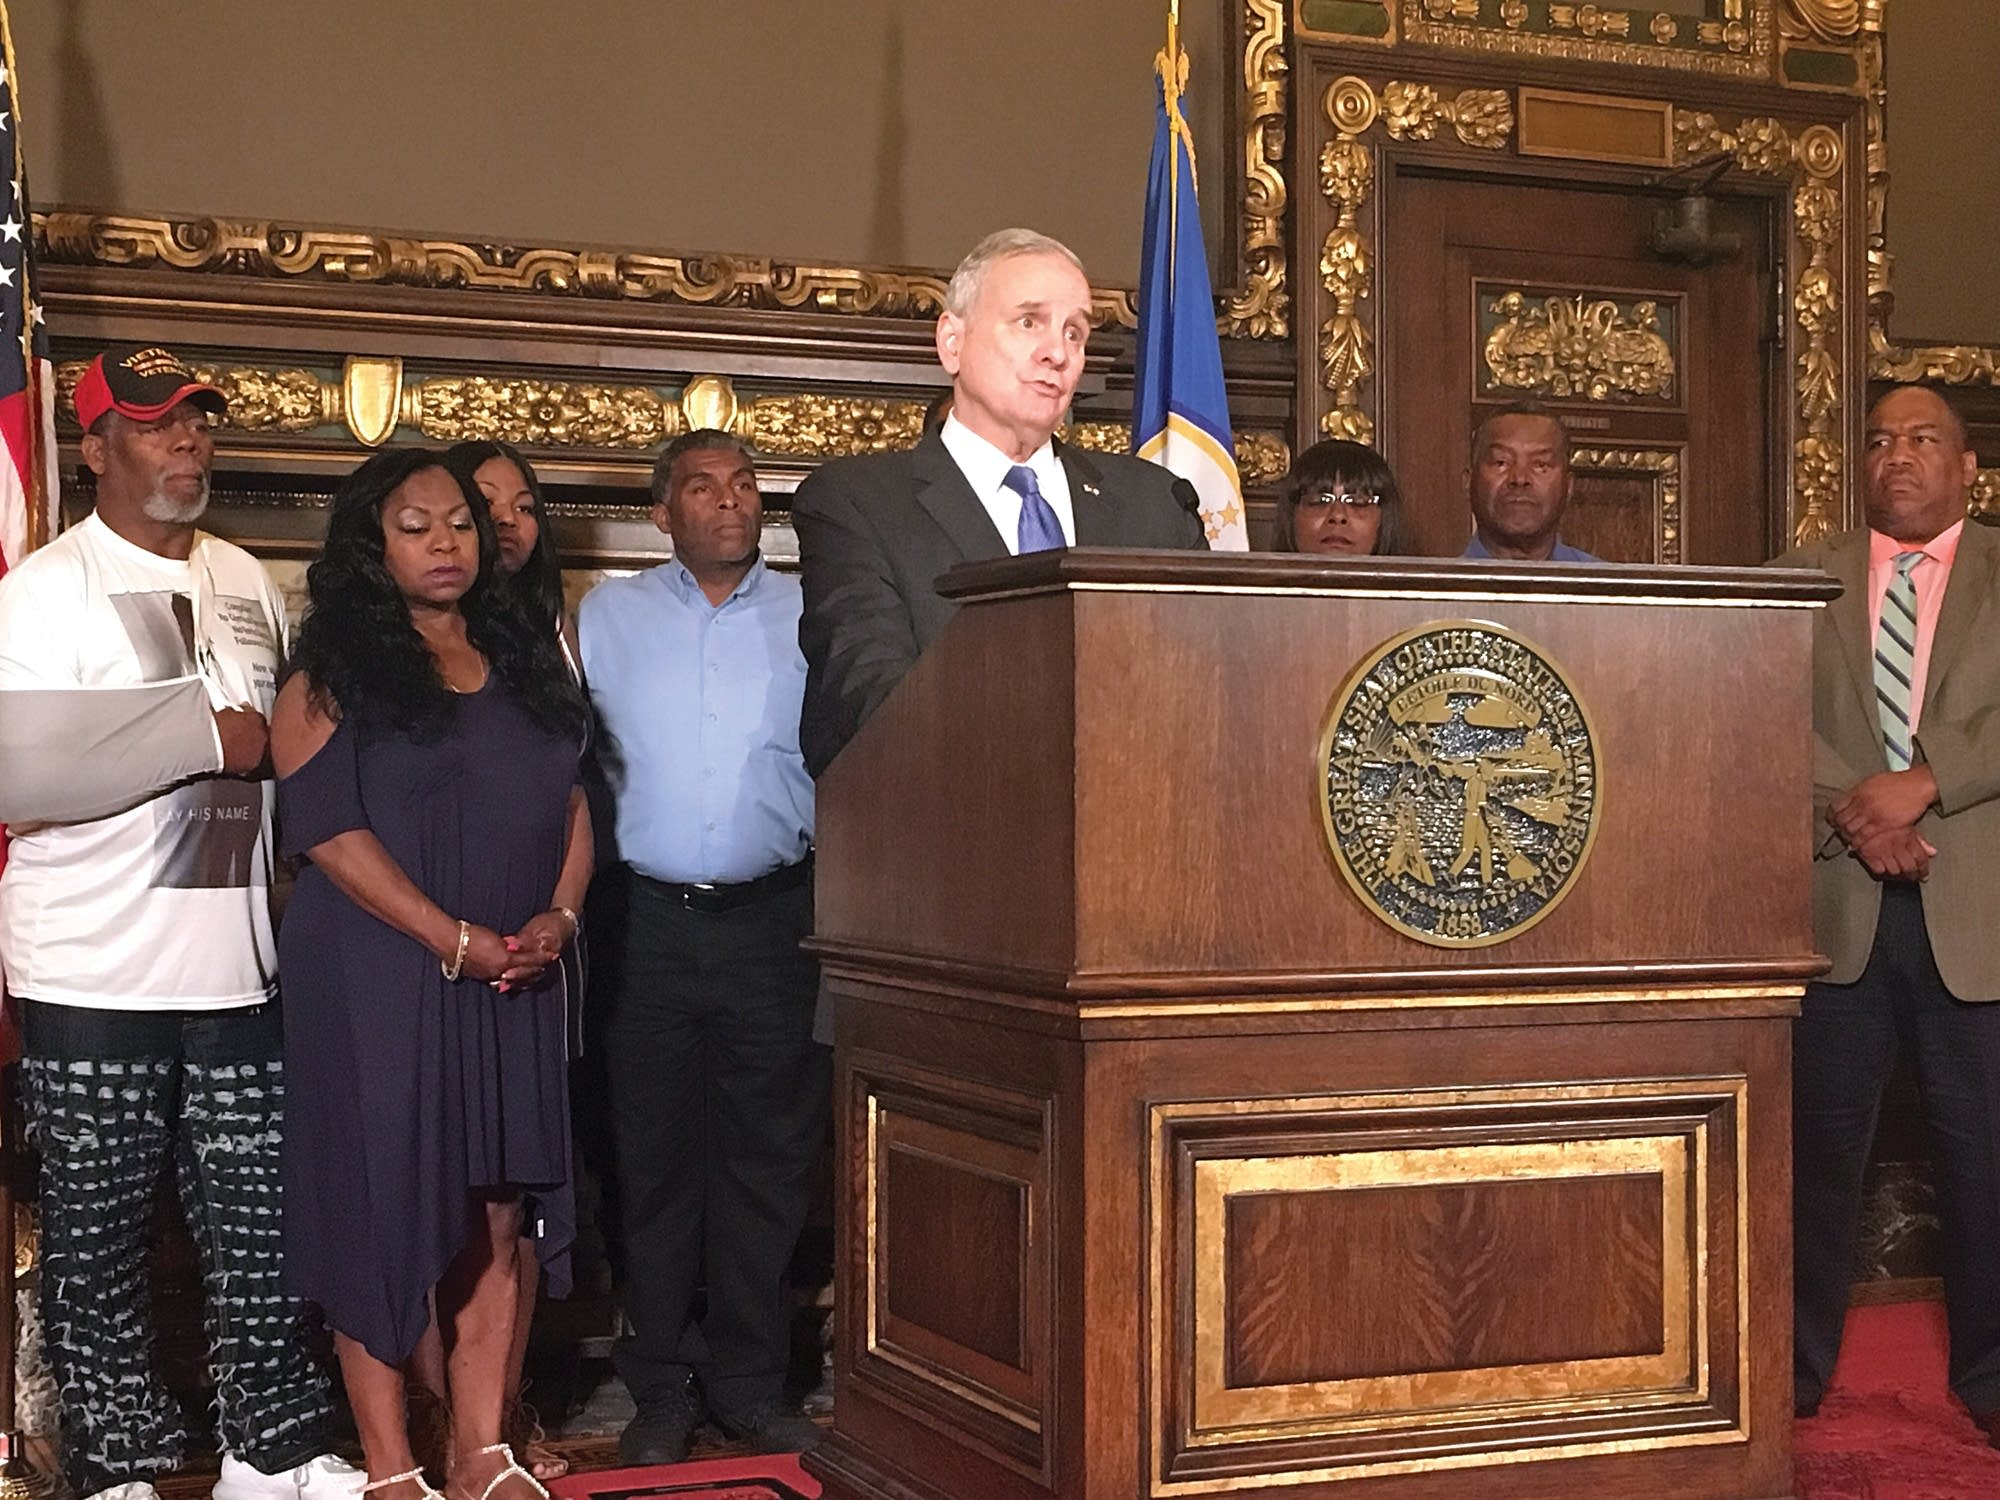 Gov. Mark Dayton speaks, surrounded by relatives of Philando Castile